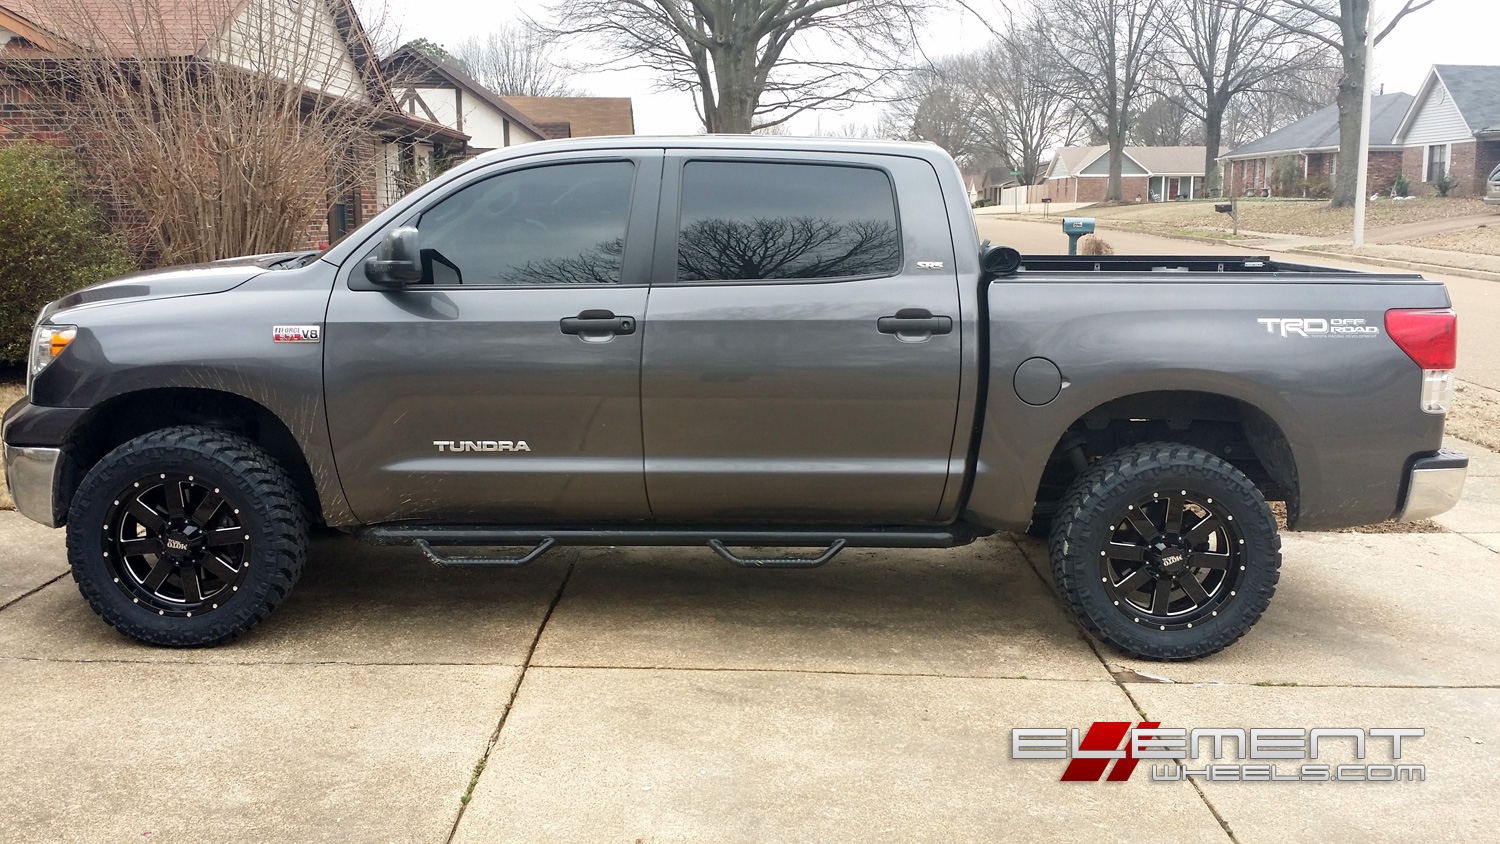 20x9 Moto Metal Mo962 Gloss Black Wheels On 2011 Toyota Tundra 3 5 In Lift W Specs additionally HP PartList as well 6355722455 besides Zone Offroad 4 Coil Springs Lift Kit 1999 2004 Jeep Grand Cherokee Wj besides Showthread. on lifted white xj